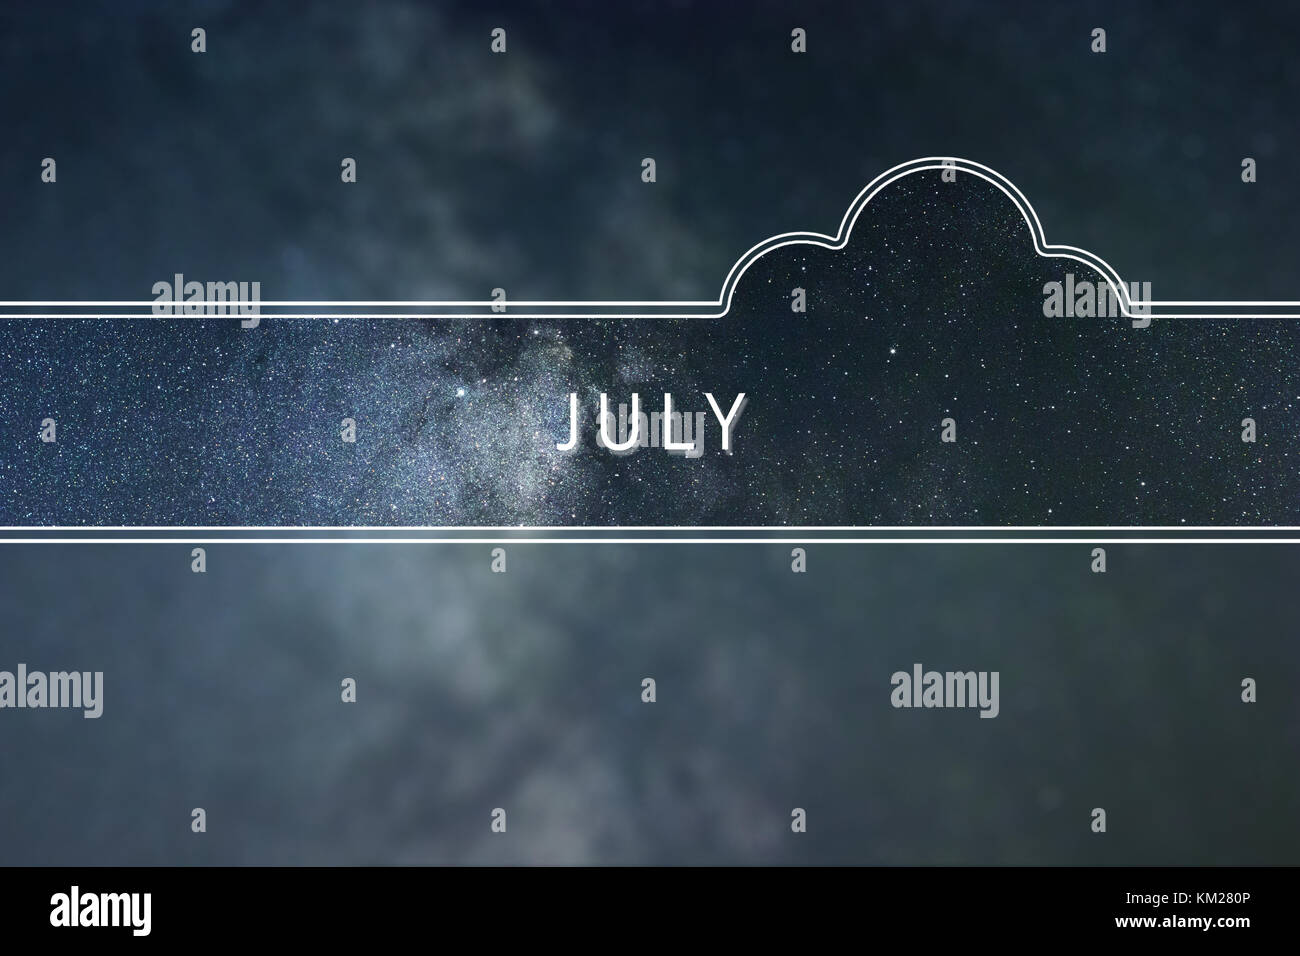 JULY word cloud Concept. Space background. - Stock Image